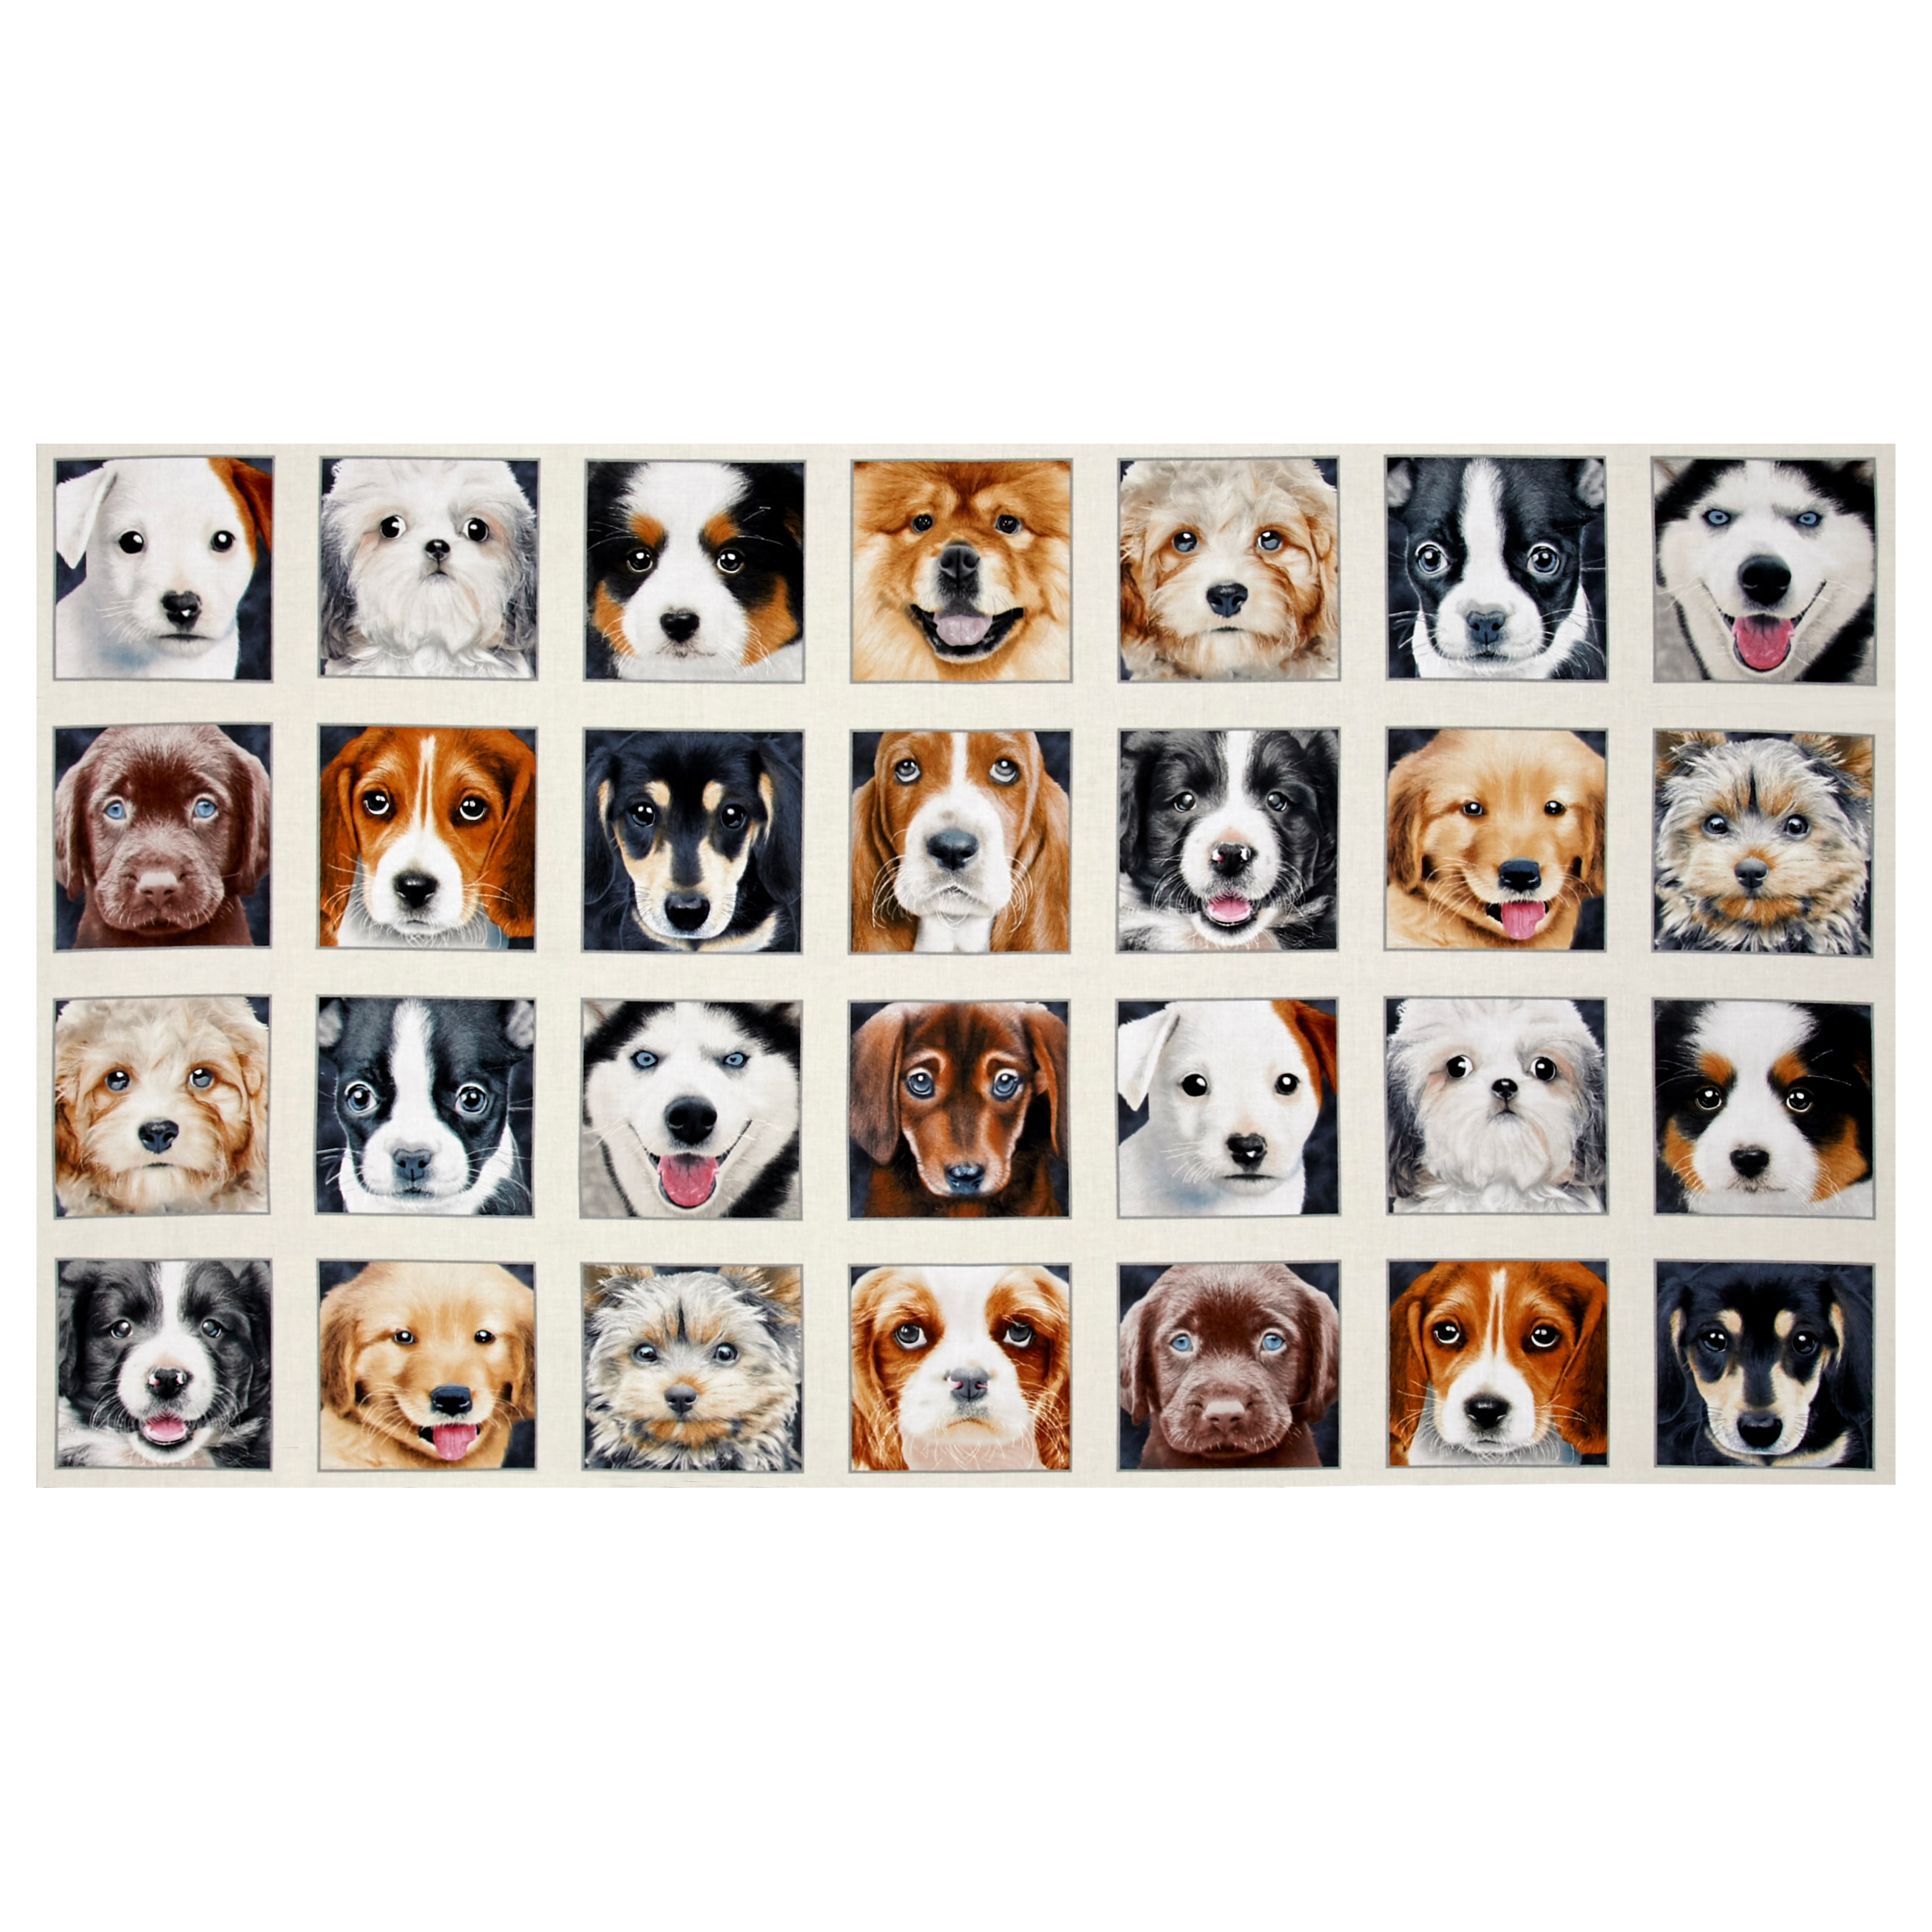 INOpets.com Anything for Pets Parents & Their Pets Adorable Pets Dogs 23'' Panel Cream Fabric